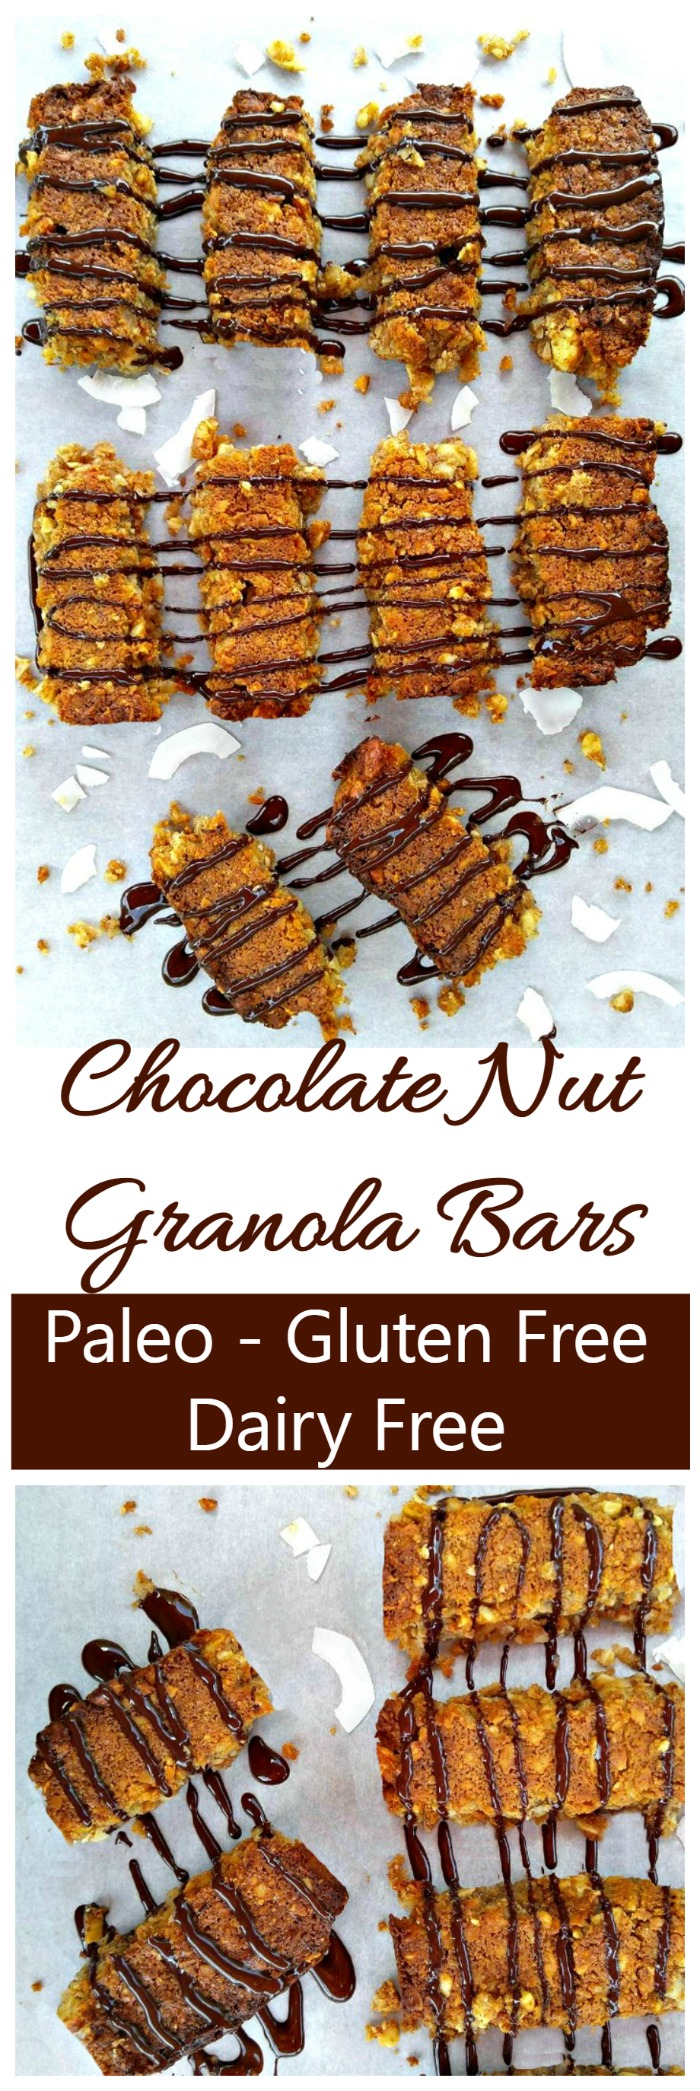 These chocolate nut granola bars are dairy free, Paleo and gluten free. YAY for clean eating!